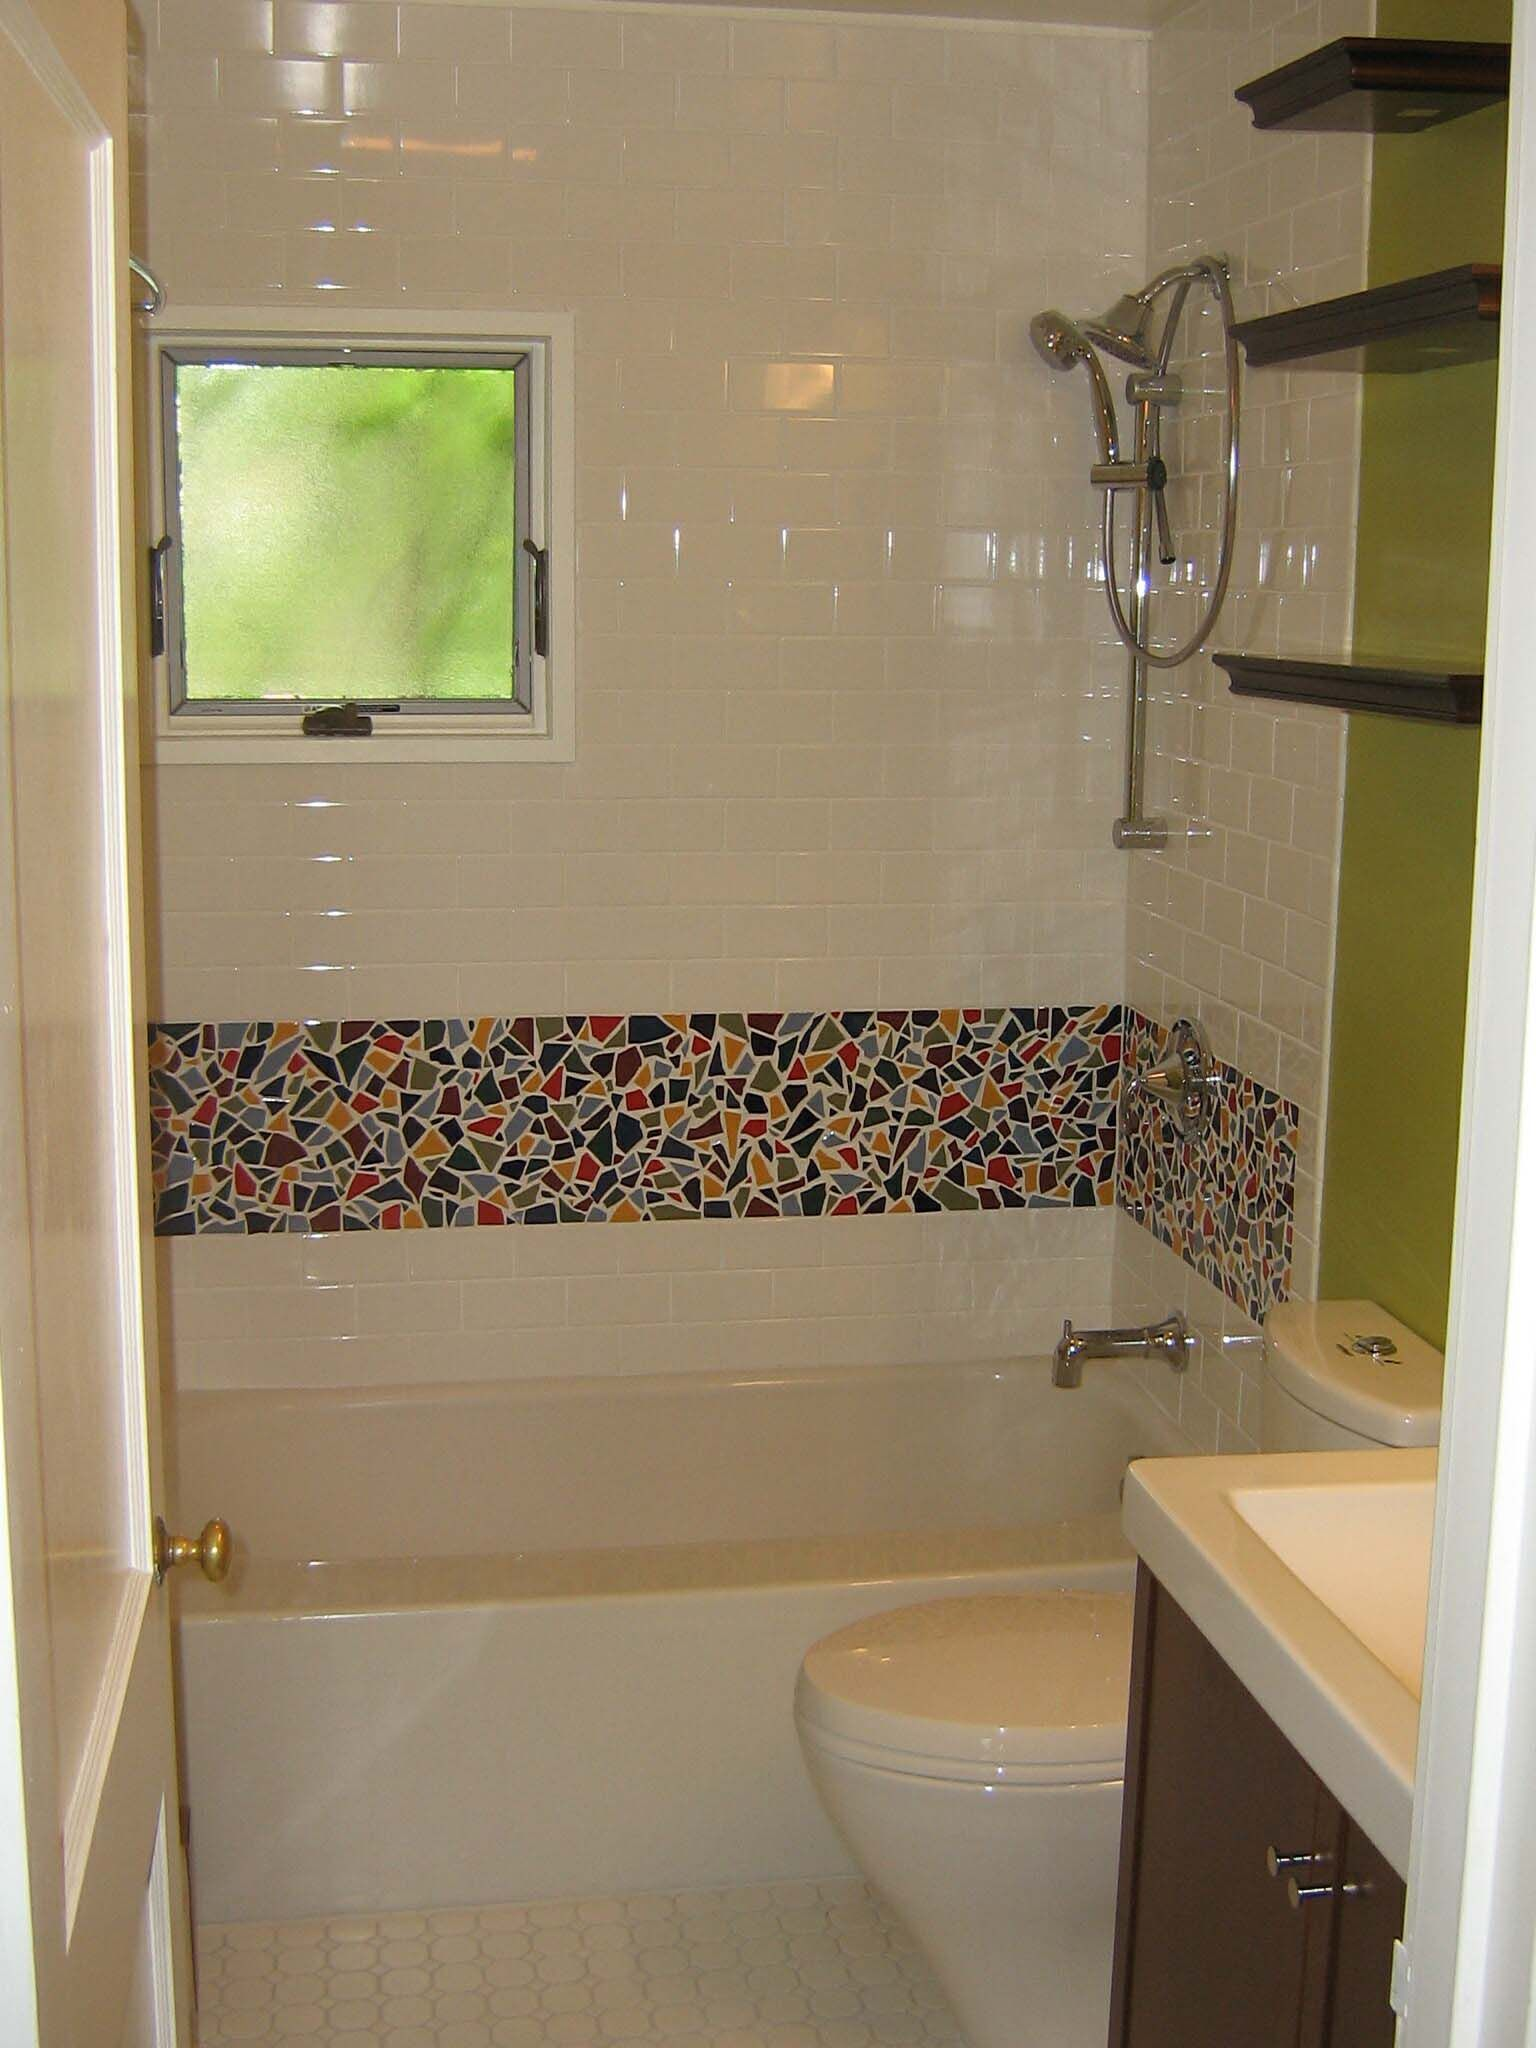 Bathroom with mosaic tiles on rukle modern bathroom mosaic Bathroom tile ideas mosaic